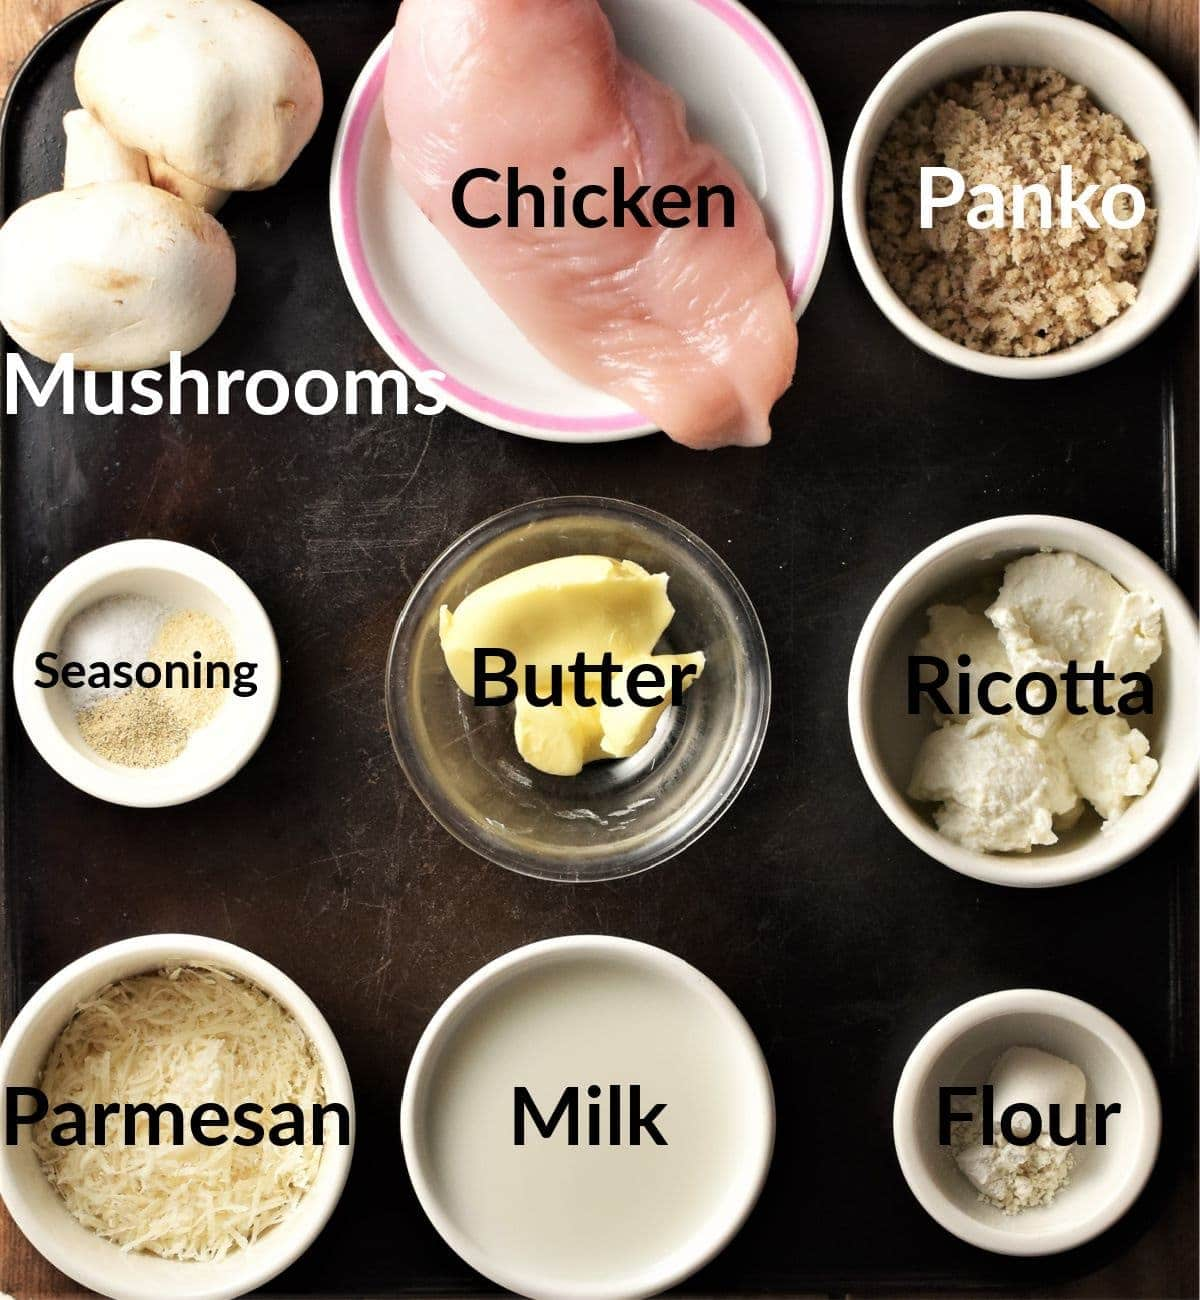 Mushroom stuffed chicken ingredients in individual dishes.